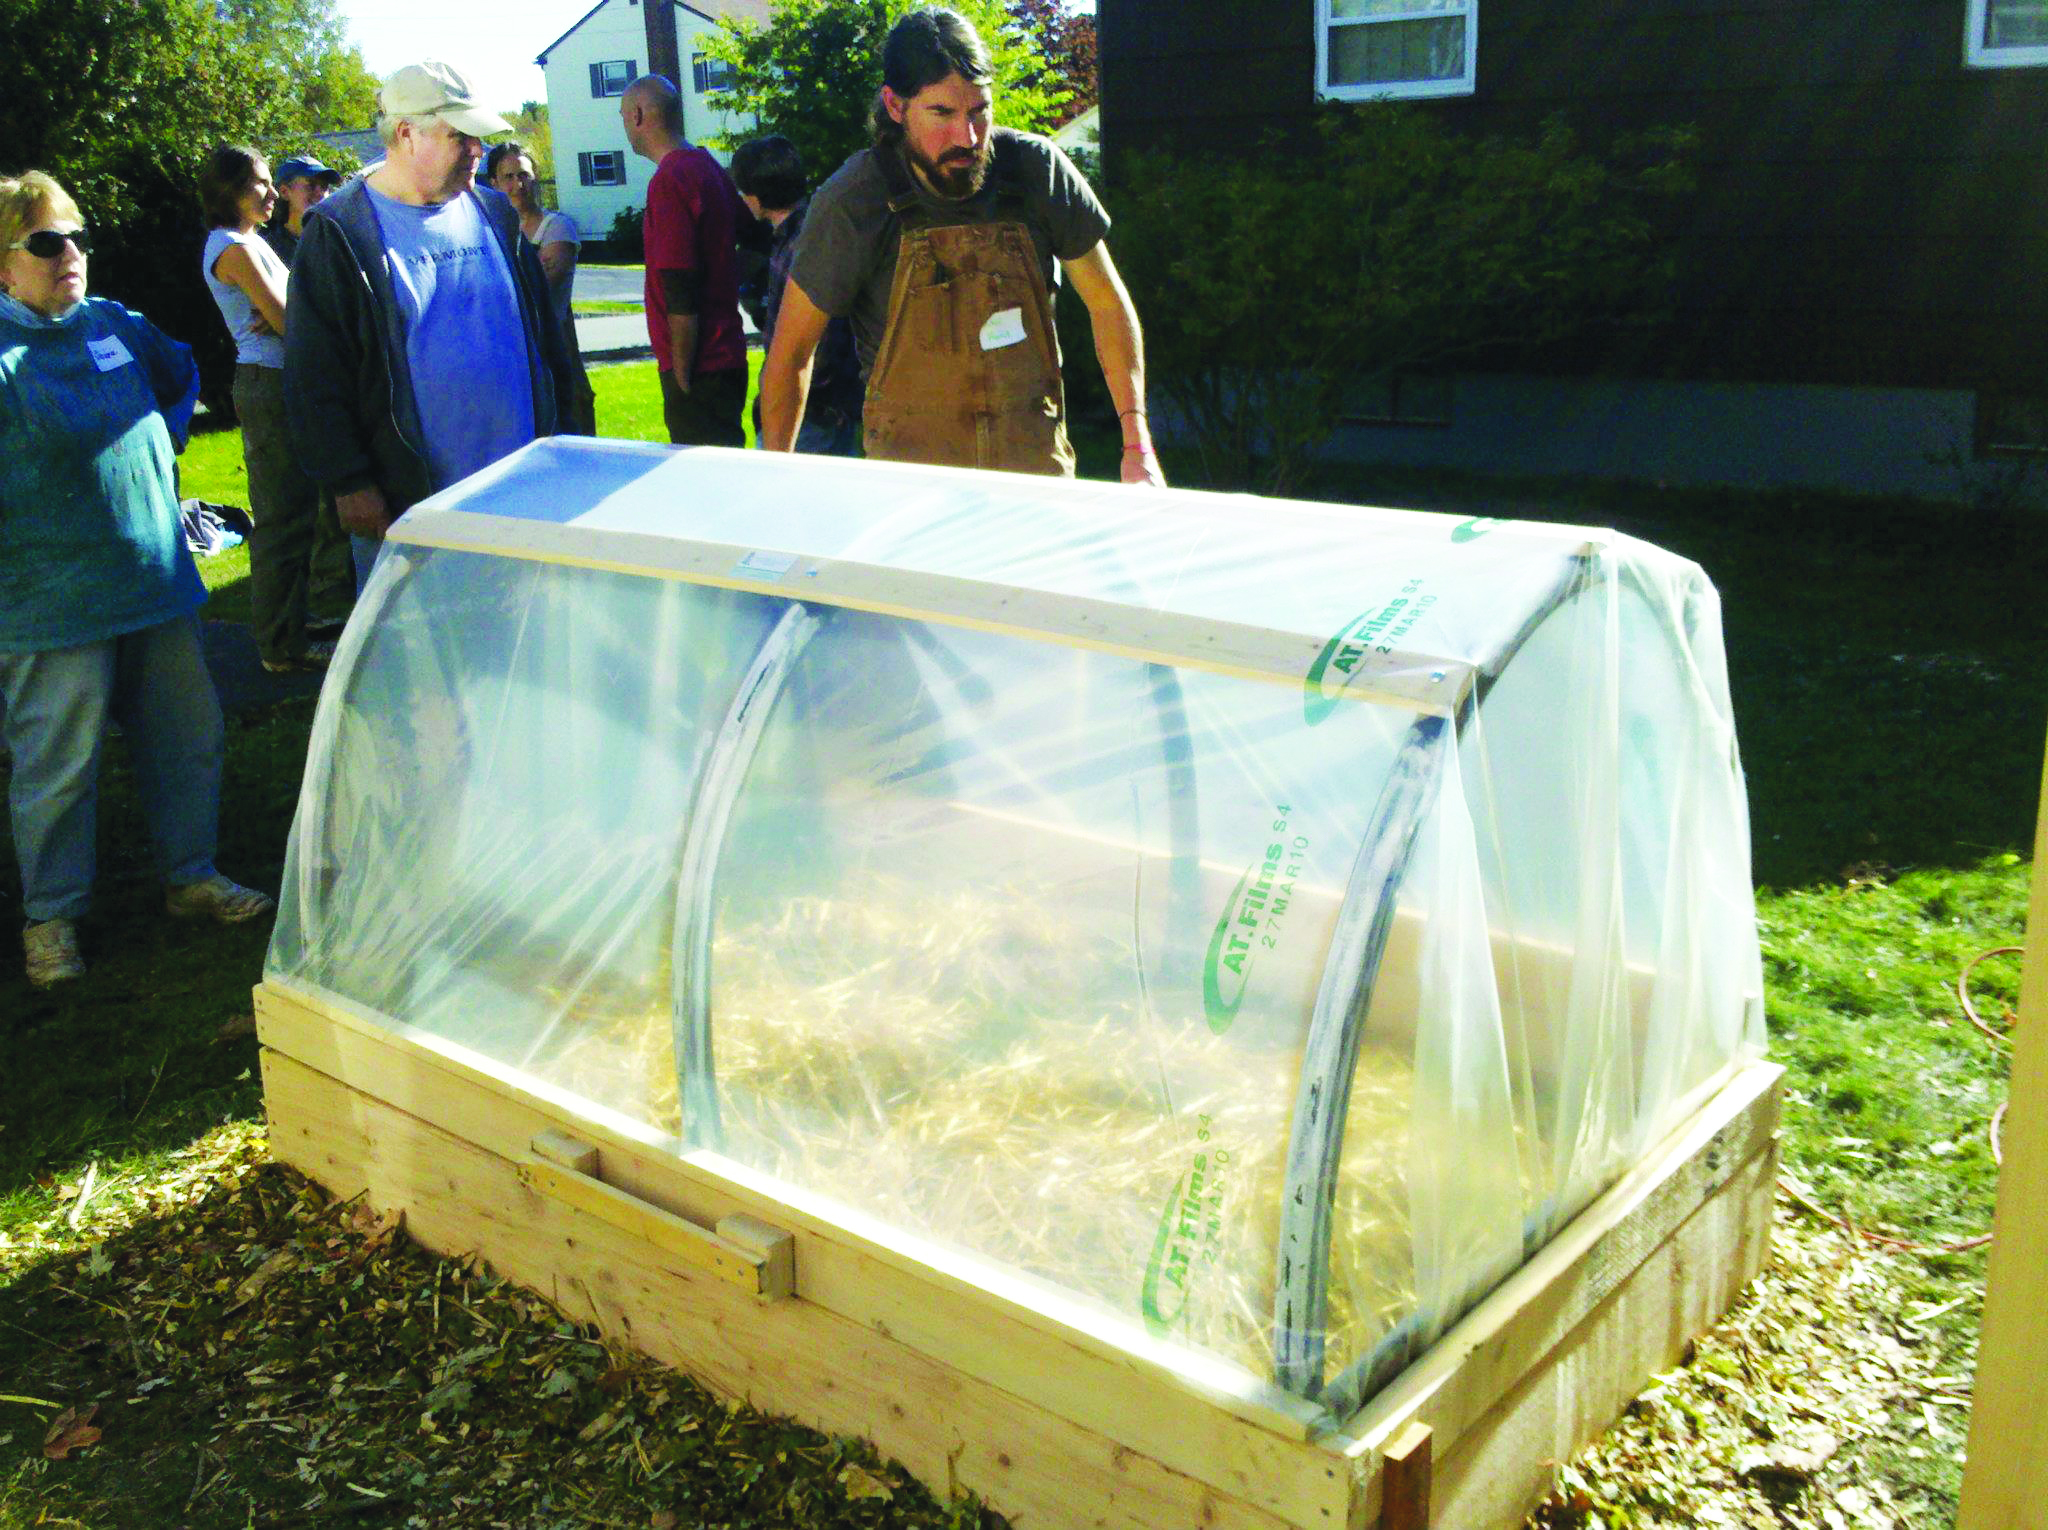 David Homa, of Post Carbon Designs, demonstrates his signature hinged hoophouse which has more ground clearance than other standard cold frame designs, leaving more room for higher-growing crops or a second layer of coverage, such as straw or Reemay. Photo courtesy of Post Carbon Designs